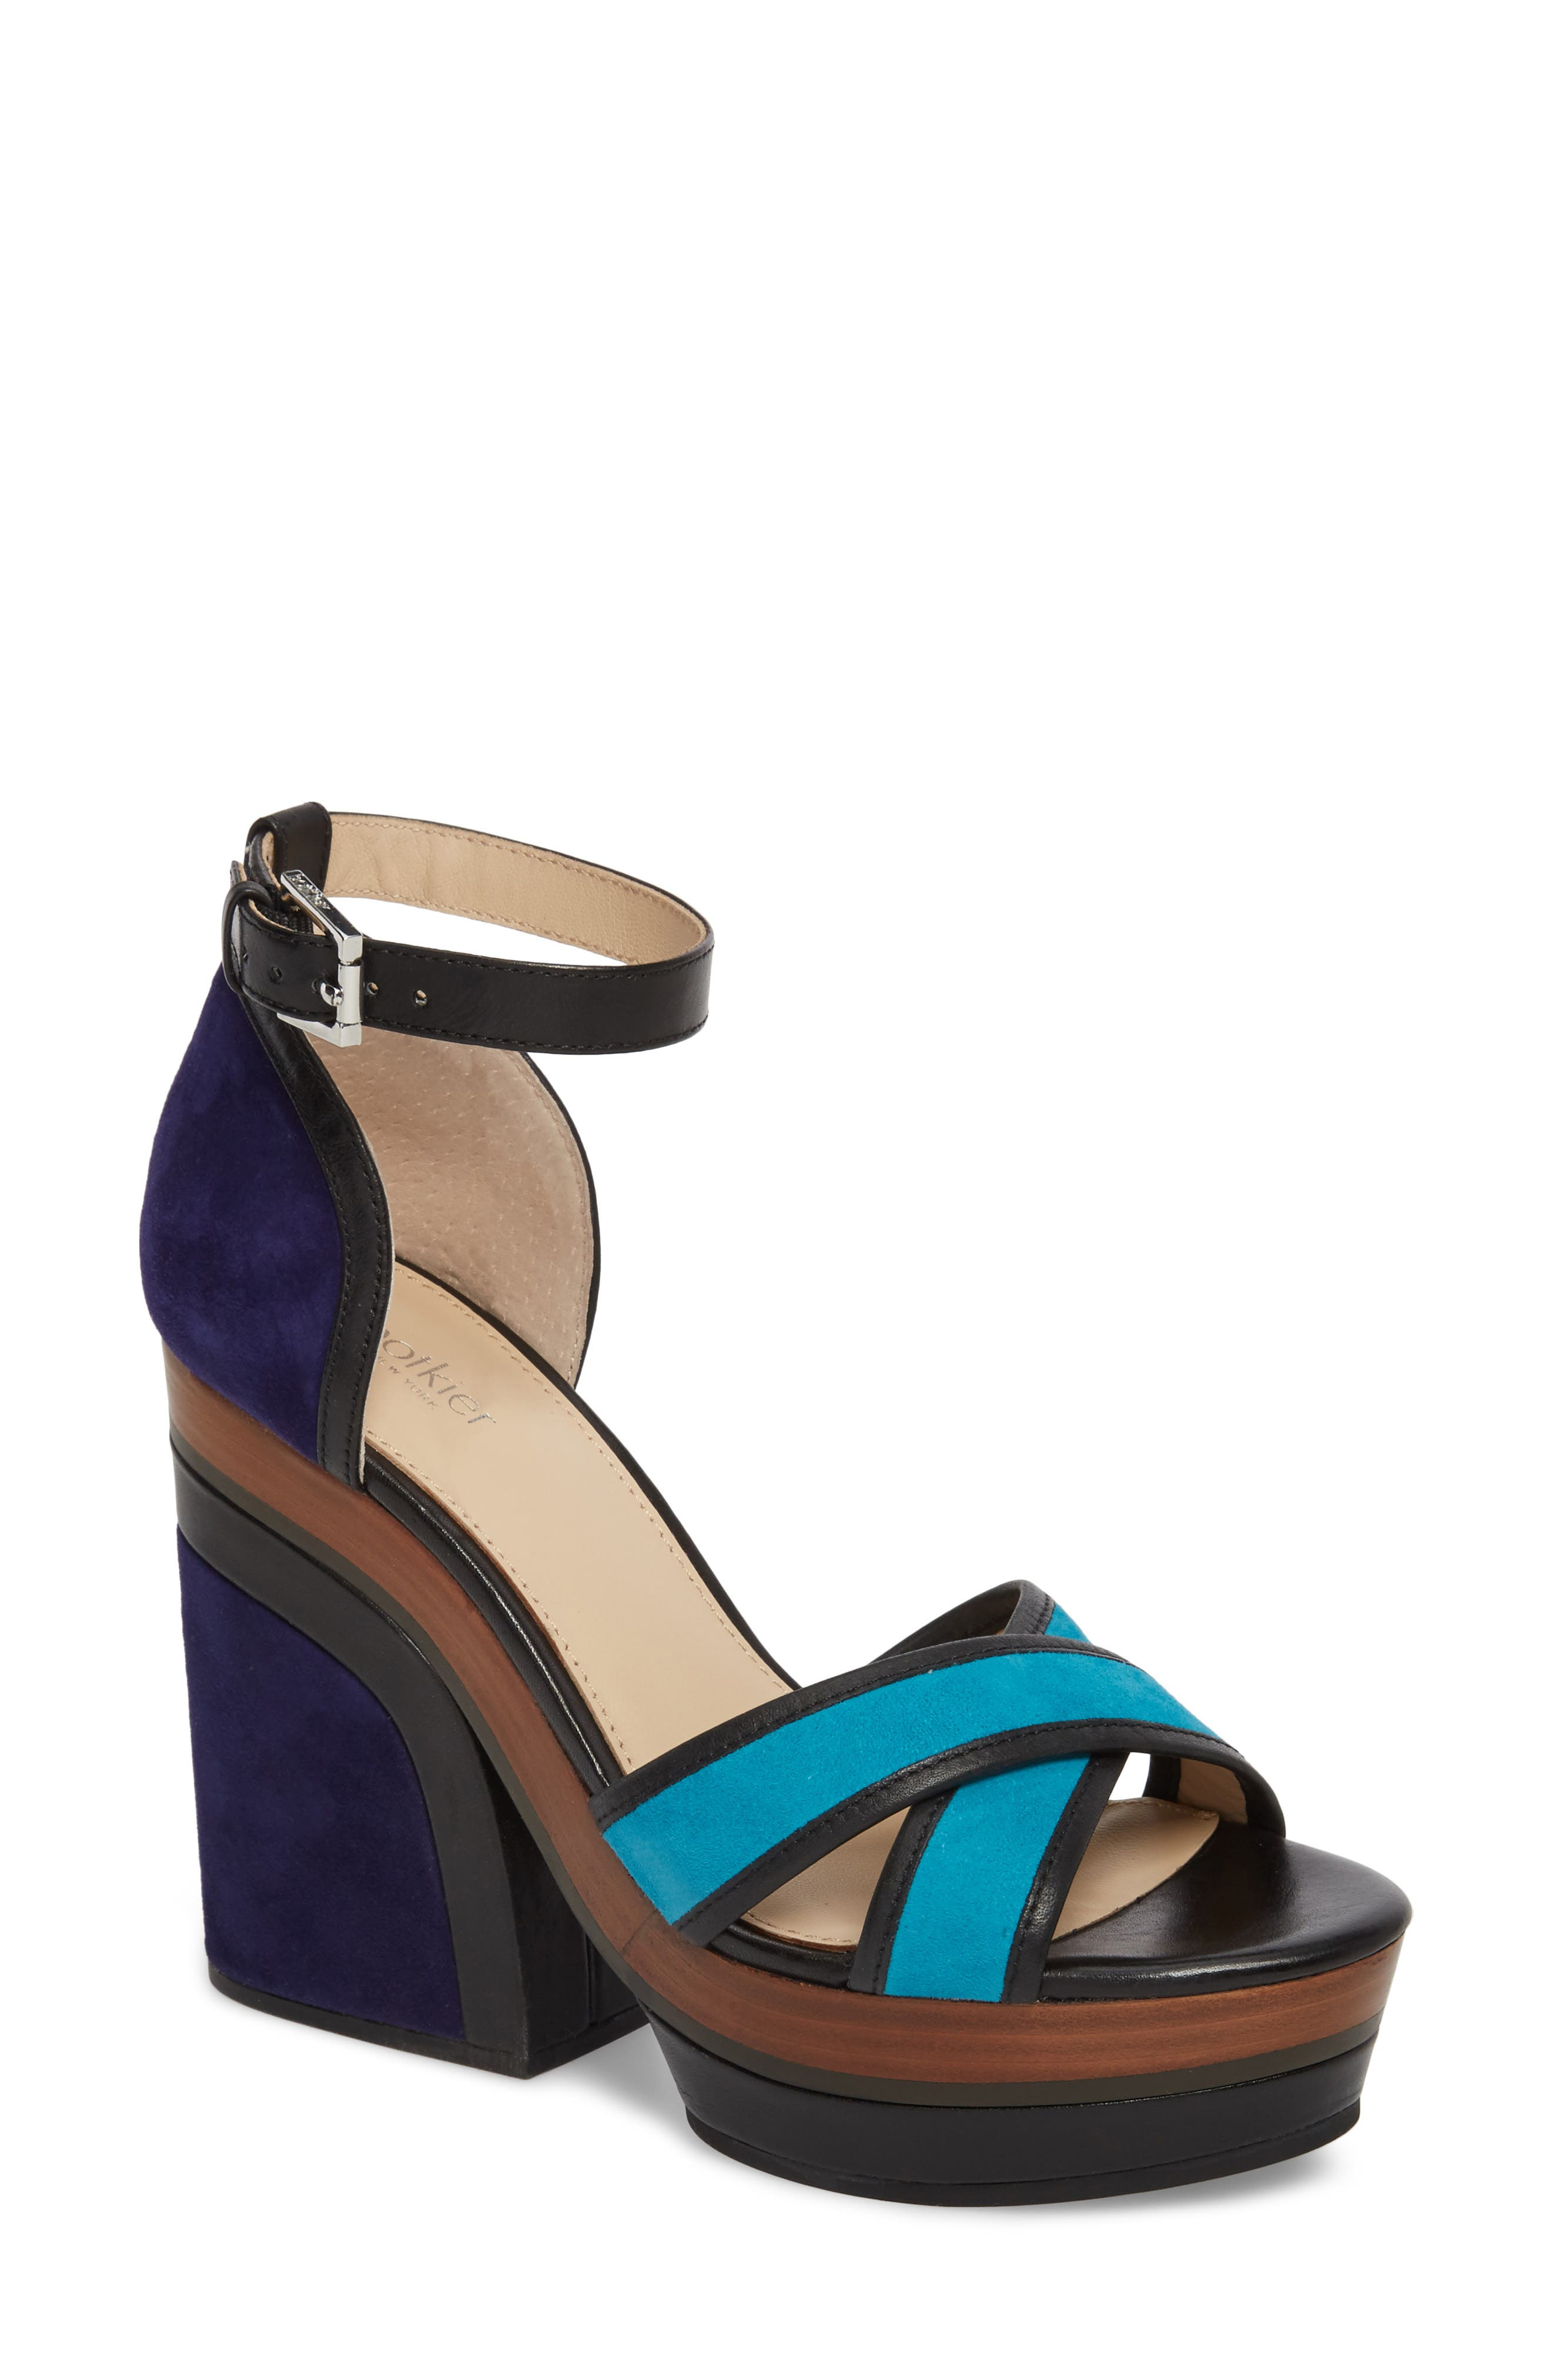 Paloma Ankle Strap Sandal,                             Main thumbnail 1, color,                             Ultra Marine Suede